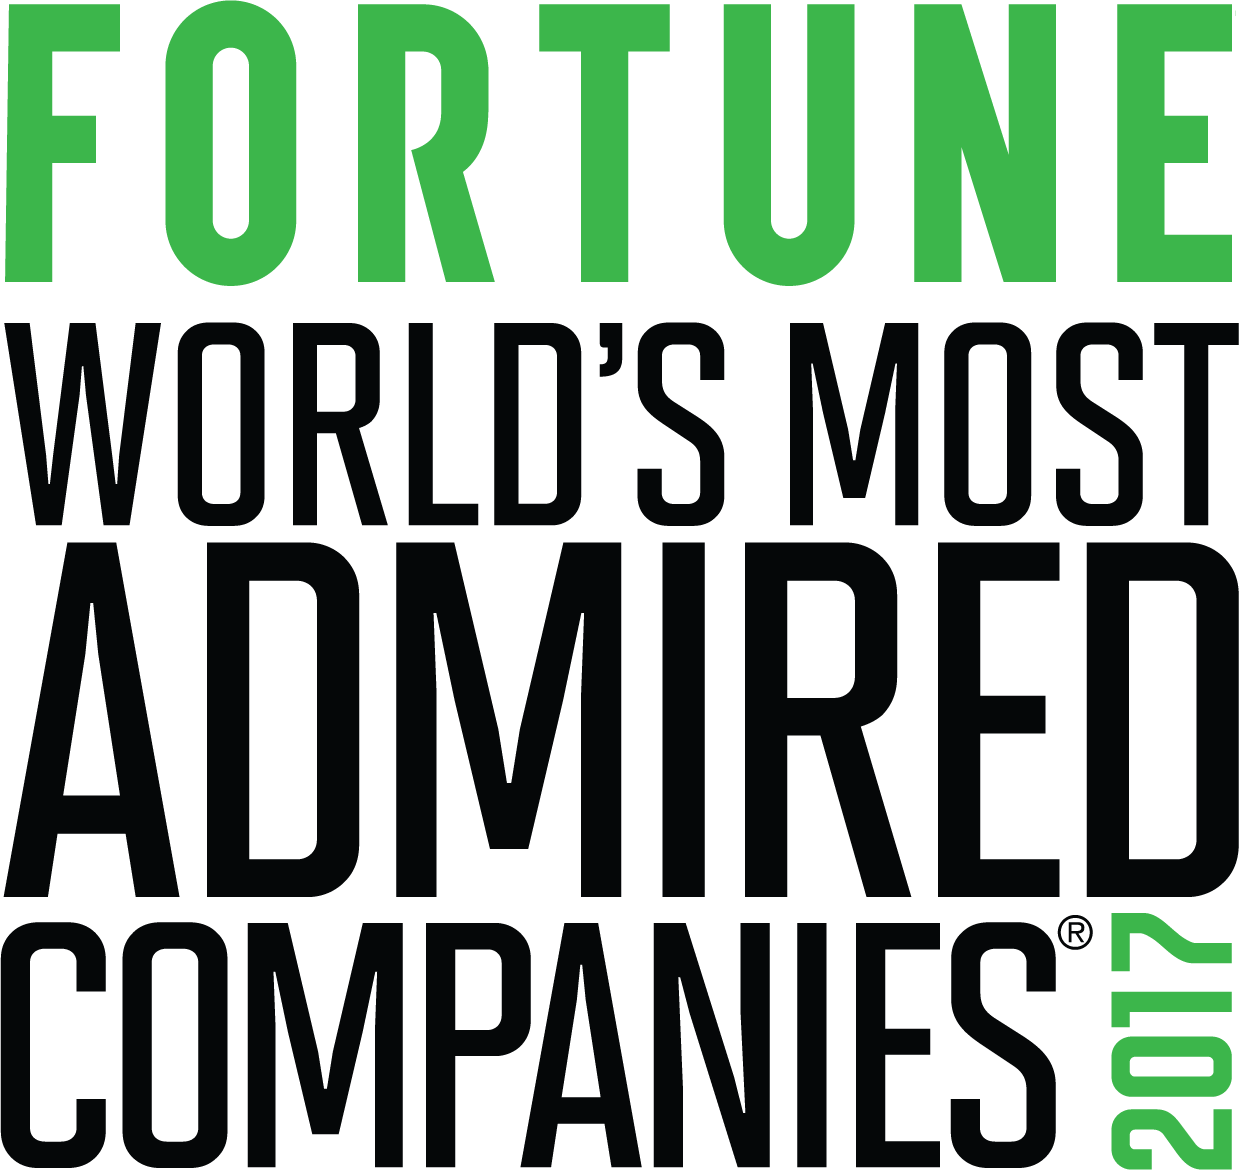 World's Most Admired Companies 2017 logo